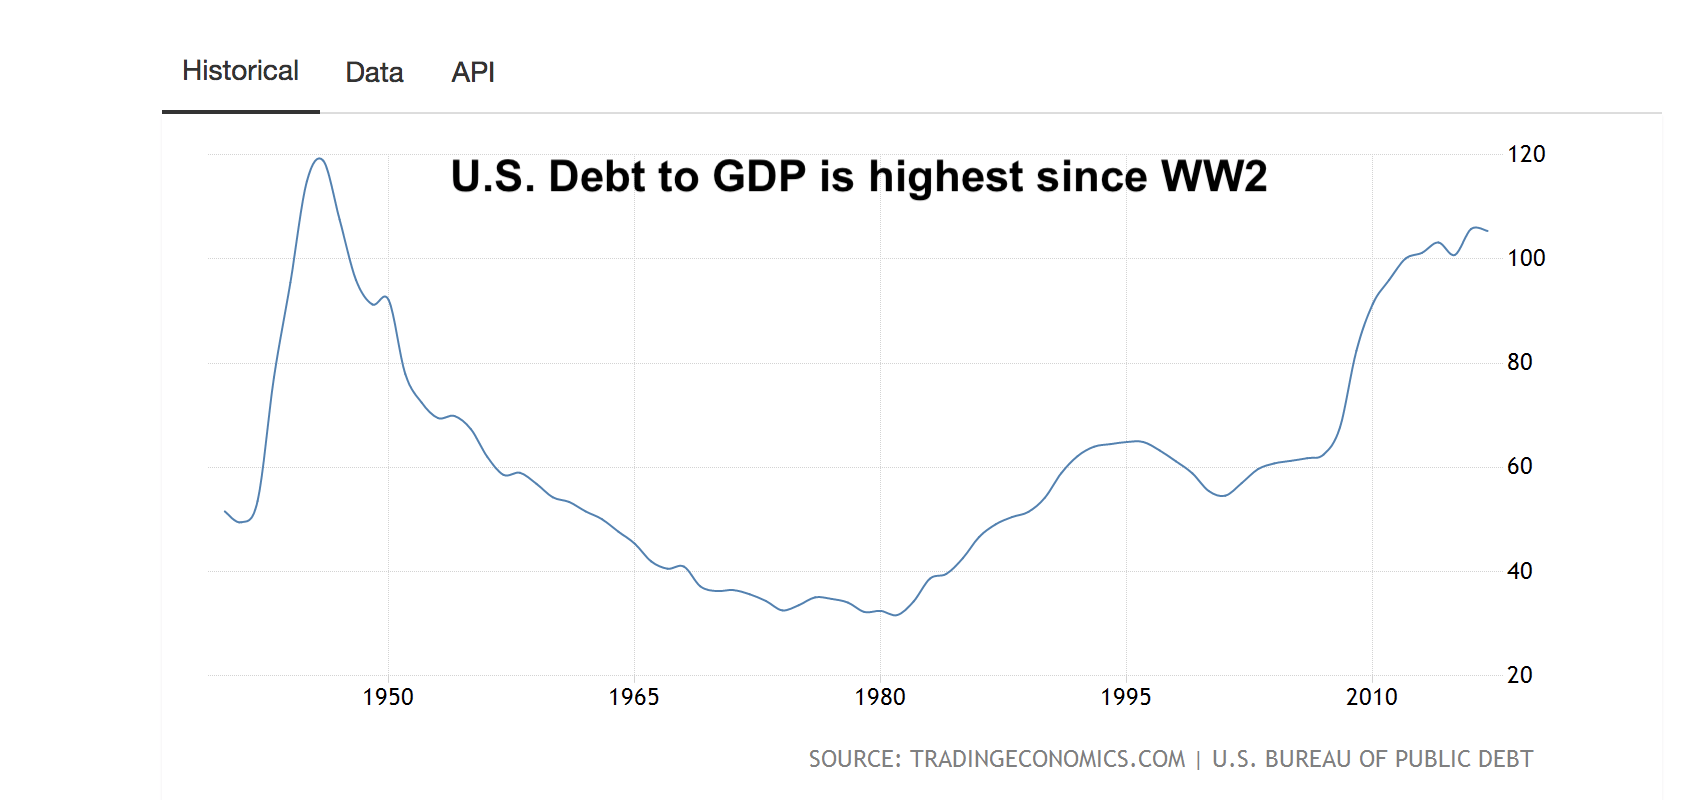 This year's spending will put the country at its highest debt levels since World War II, when fiscal deficits soared to pay for war spending.